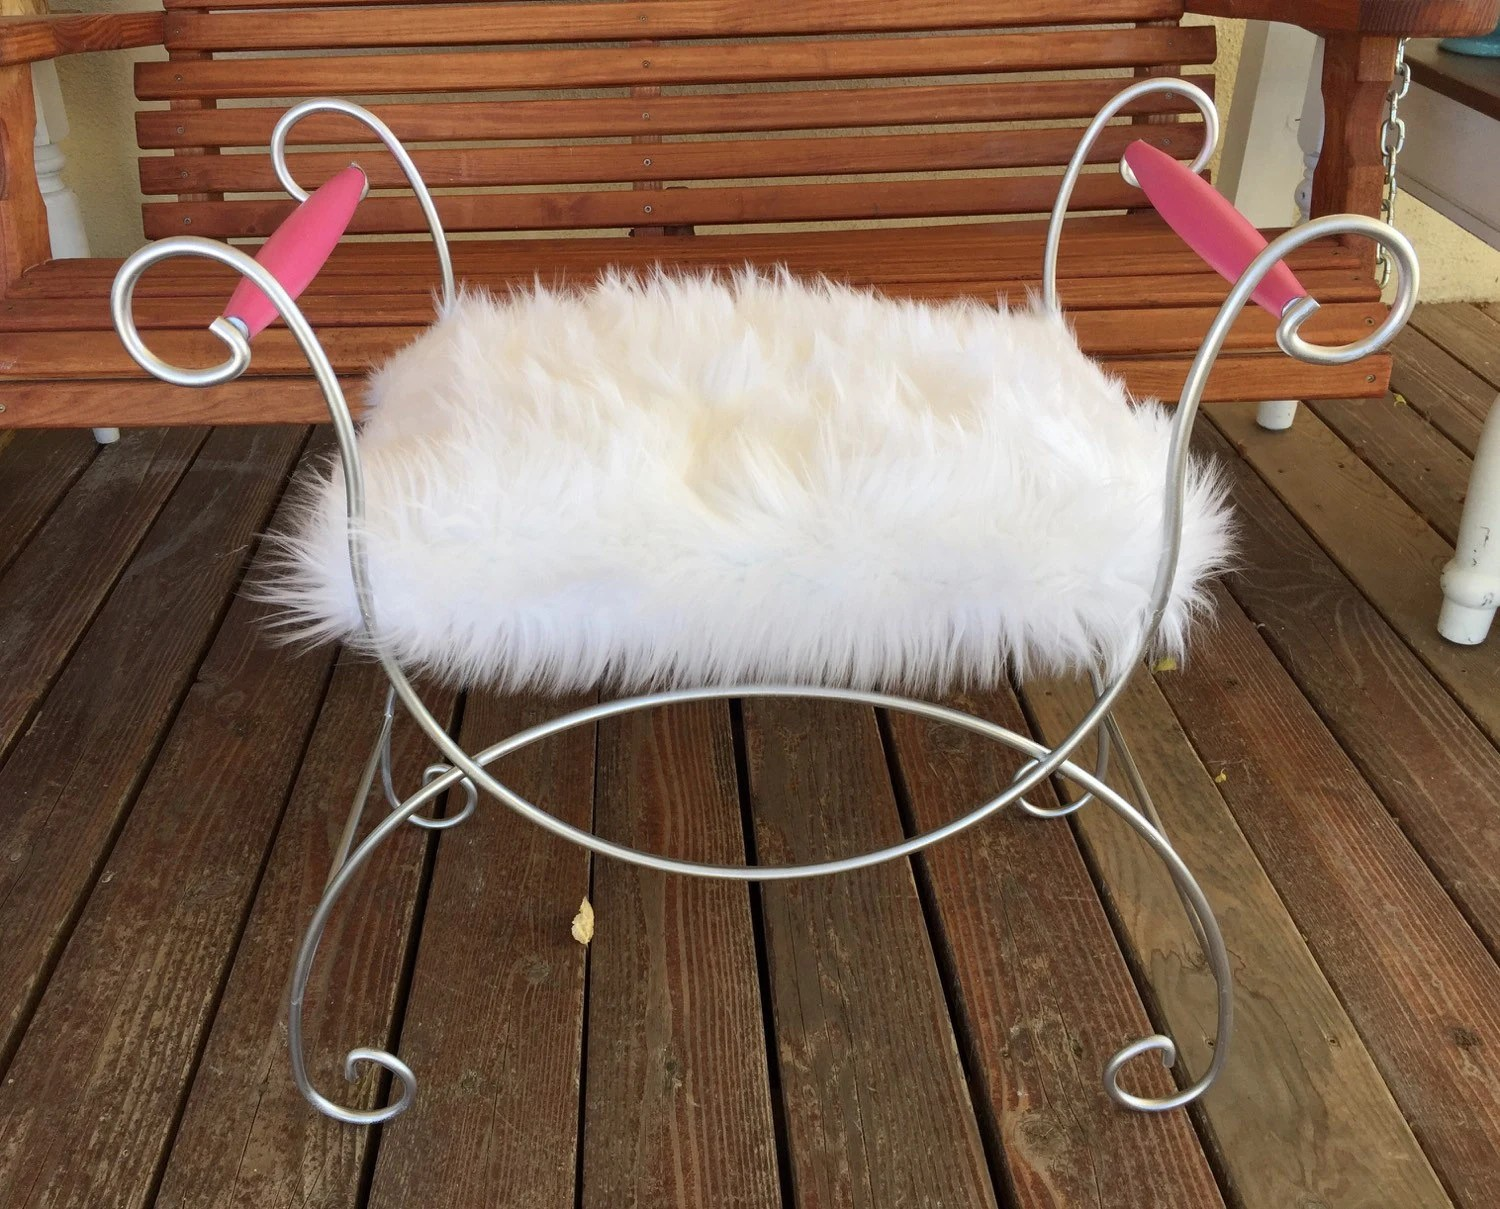 vanity chair white fur outdoor fire pit and chairs chandeliers pendant lights